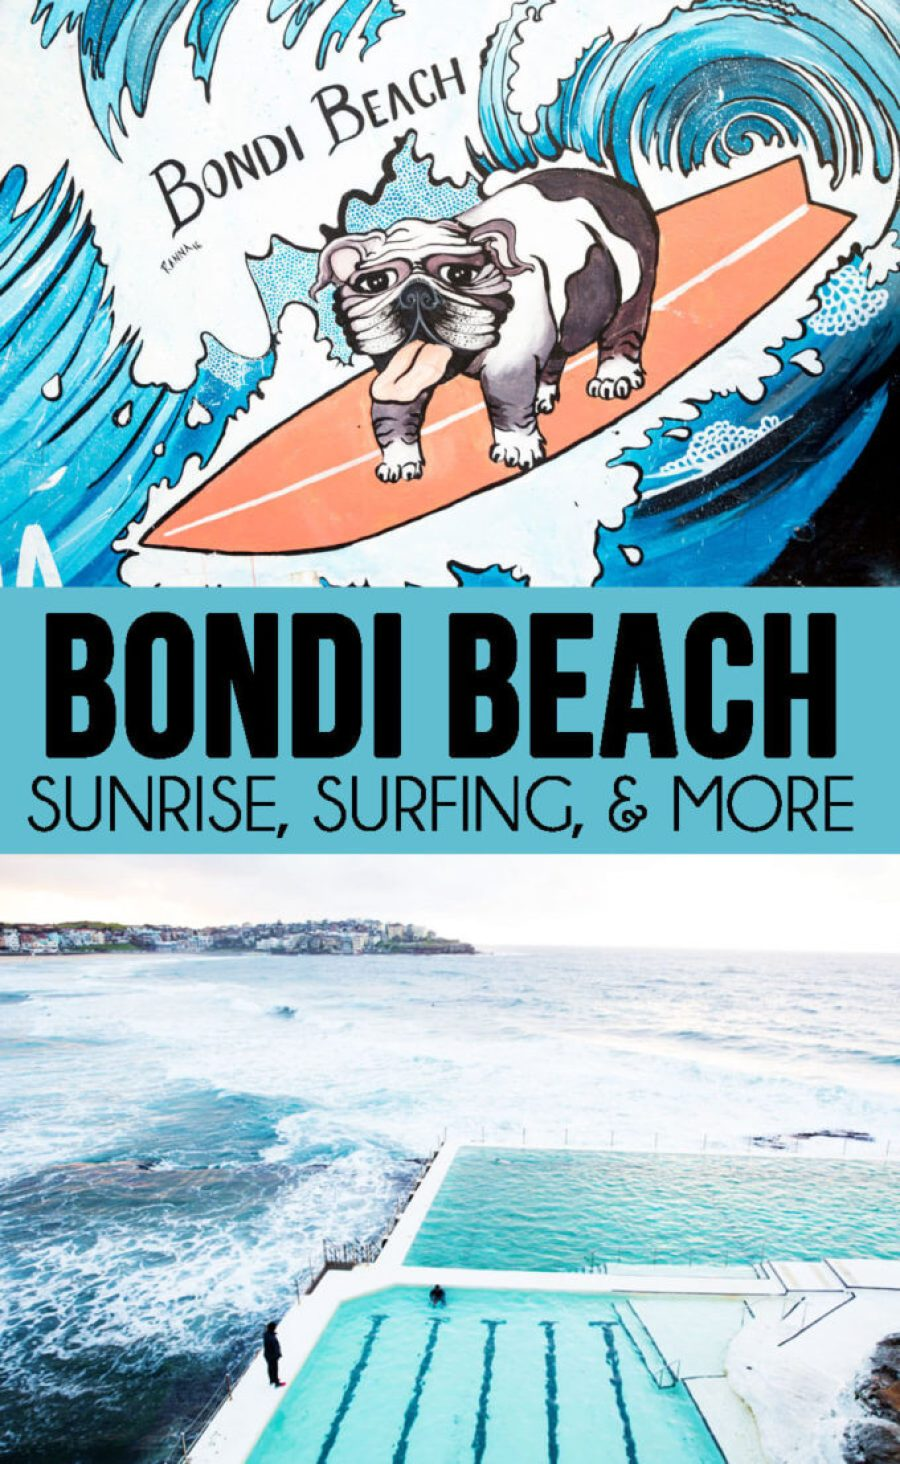 Spending a day at Bondi Beach, surfing, sunrises, and so much more